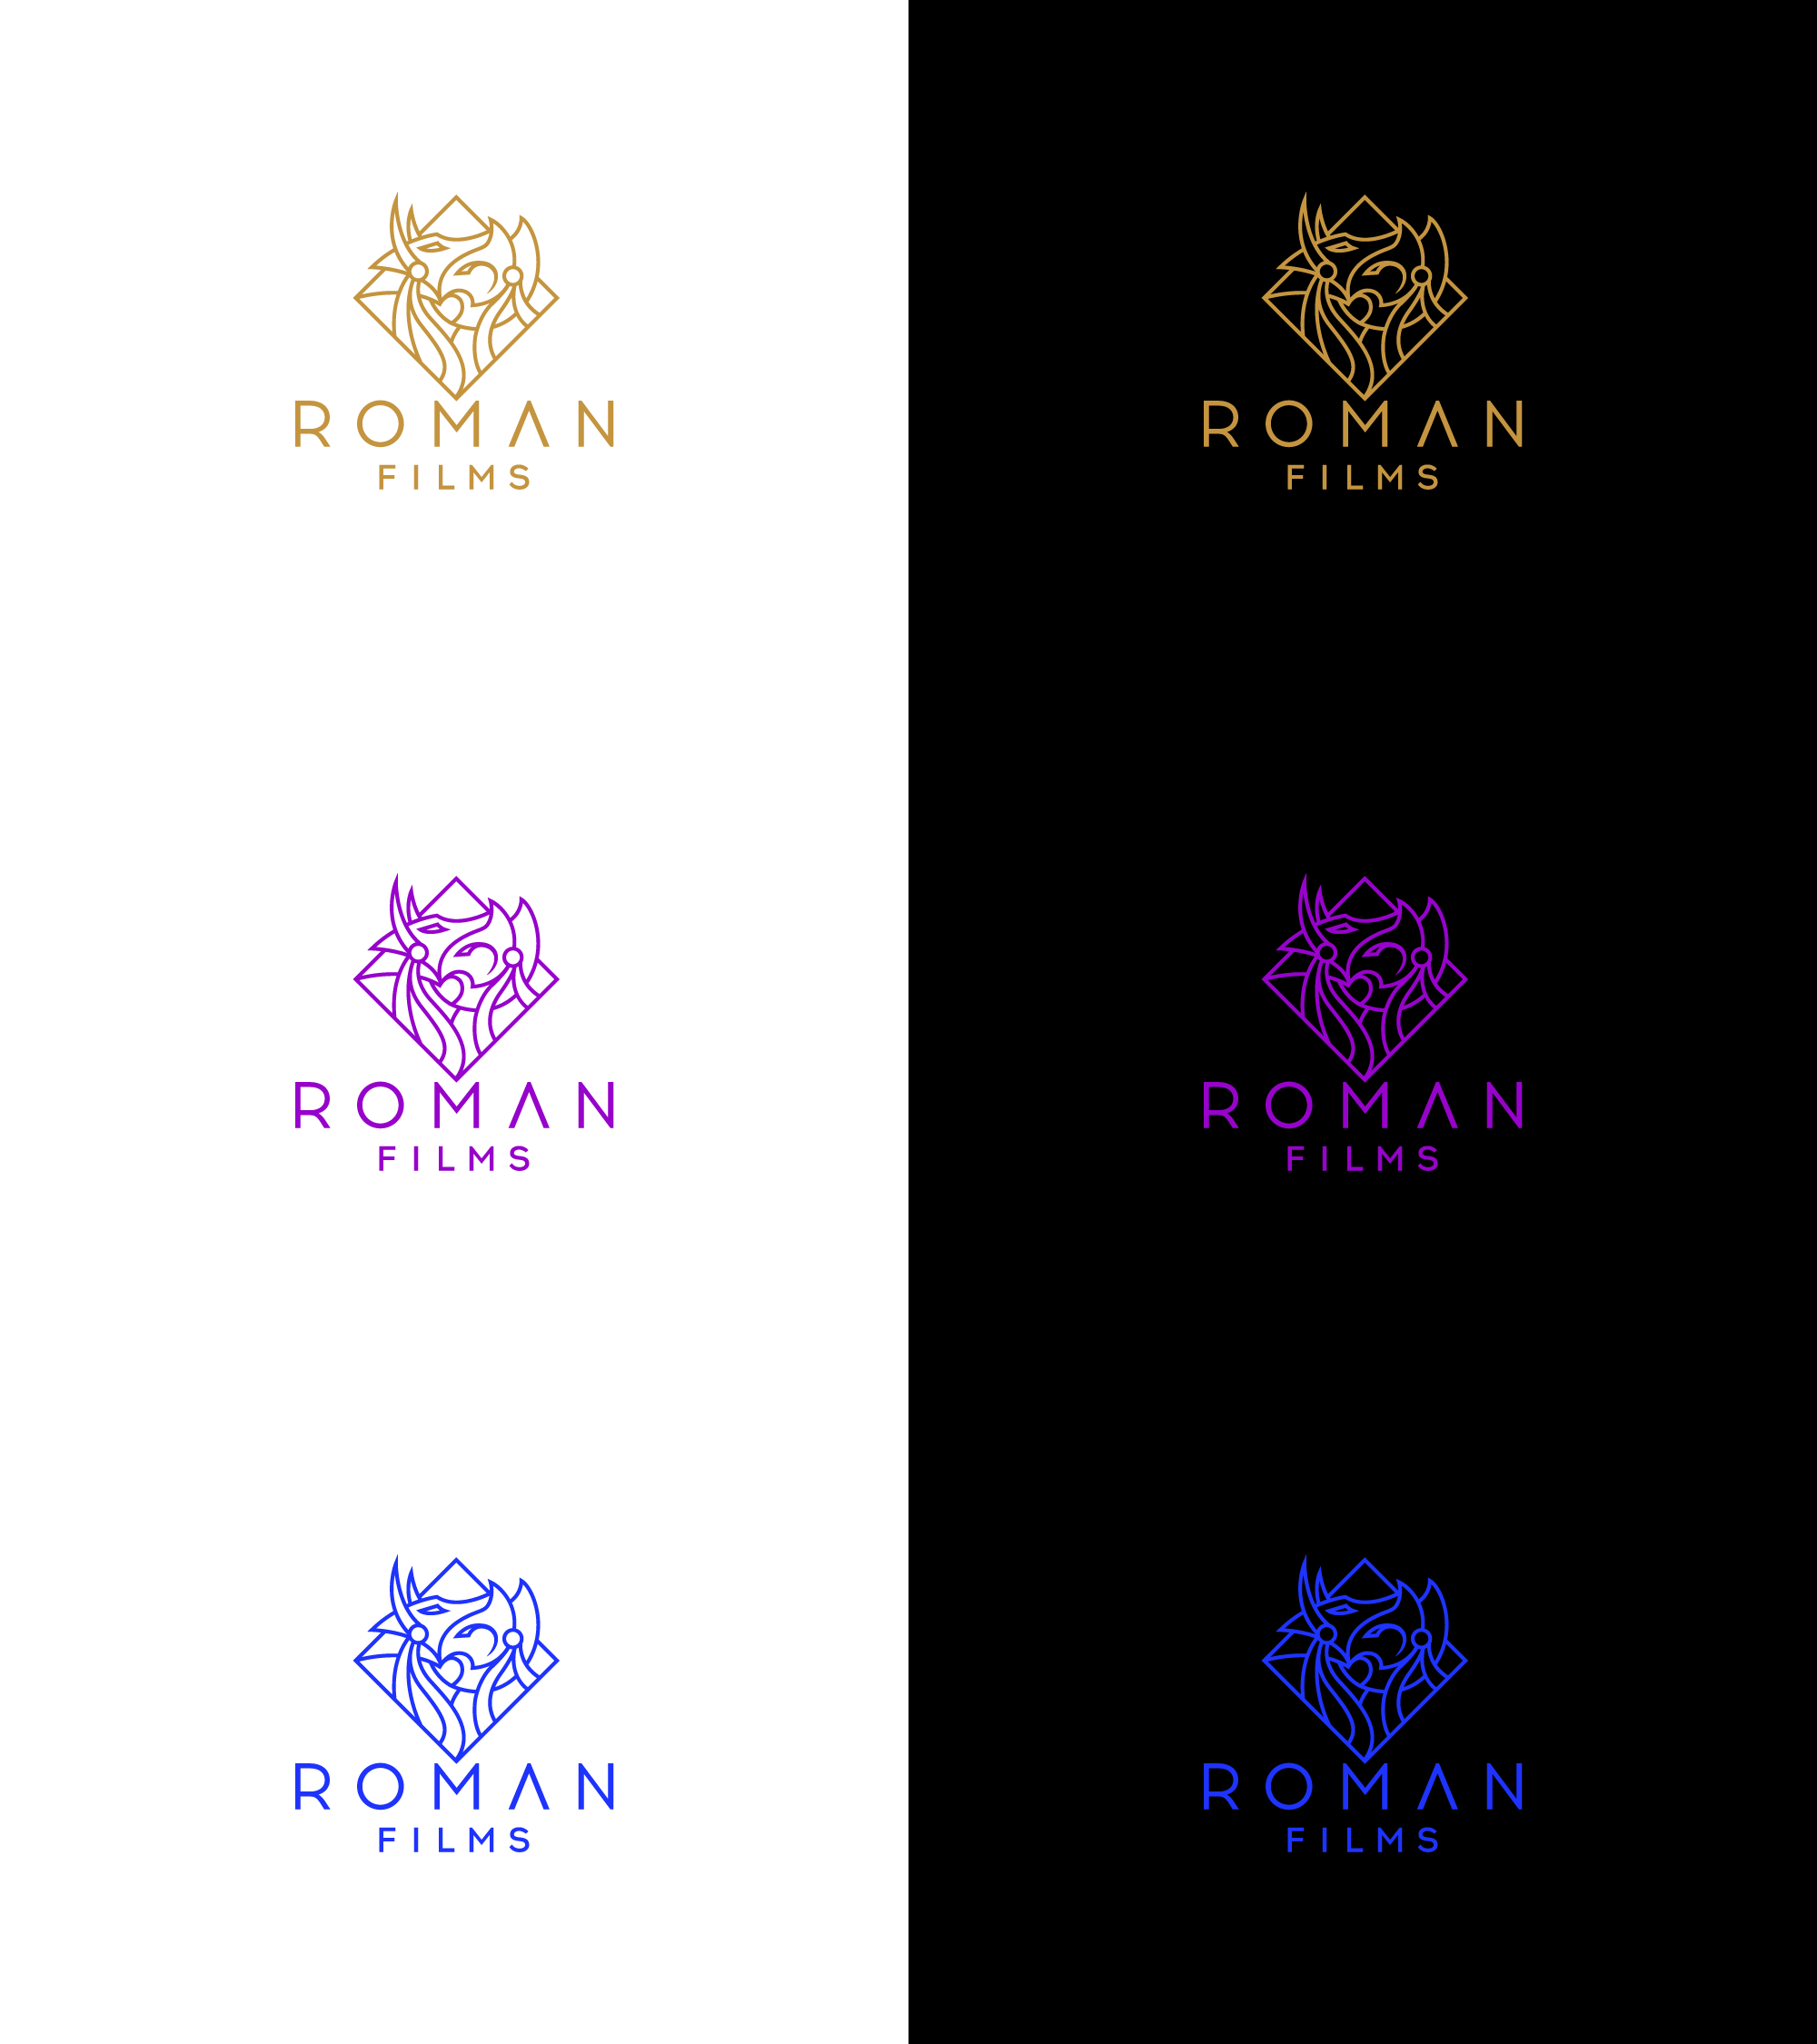 GUARANTEED: Roman Films needs a powerful and captivating new logo